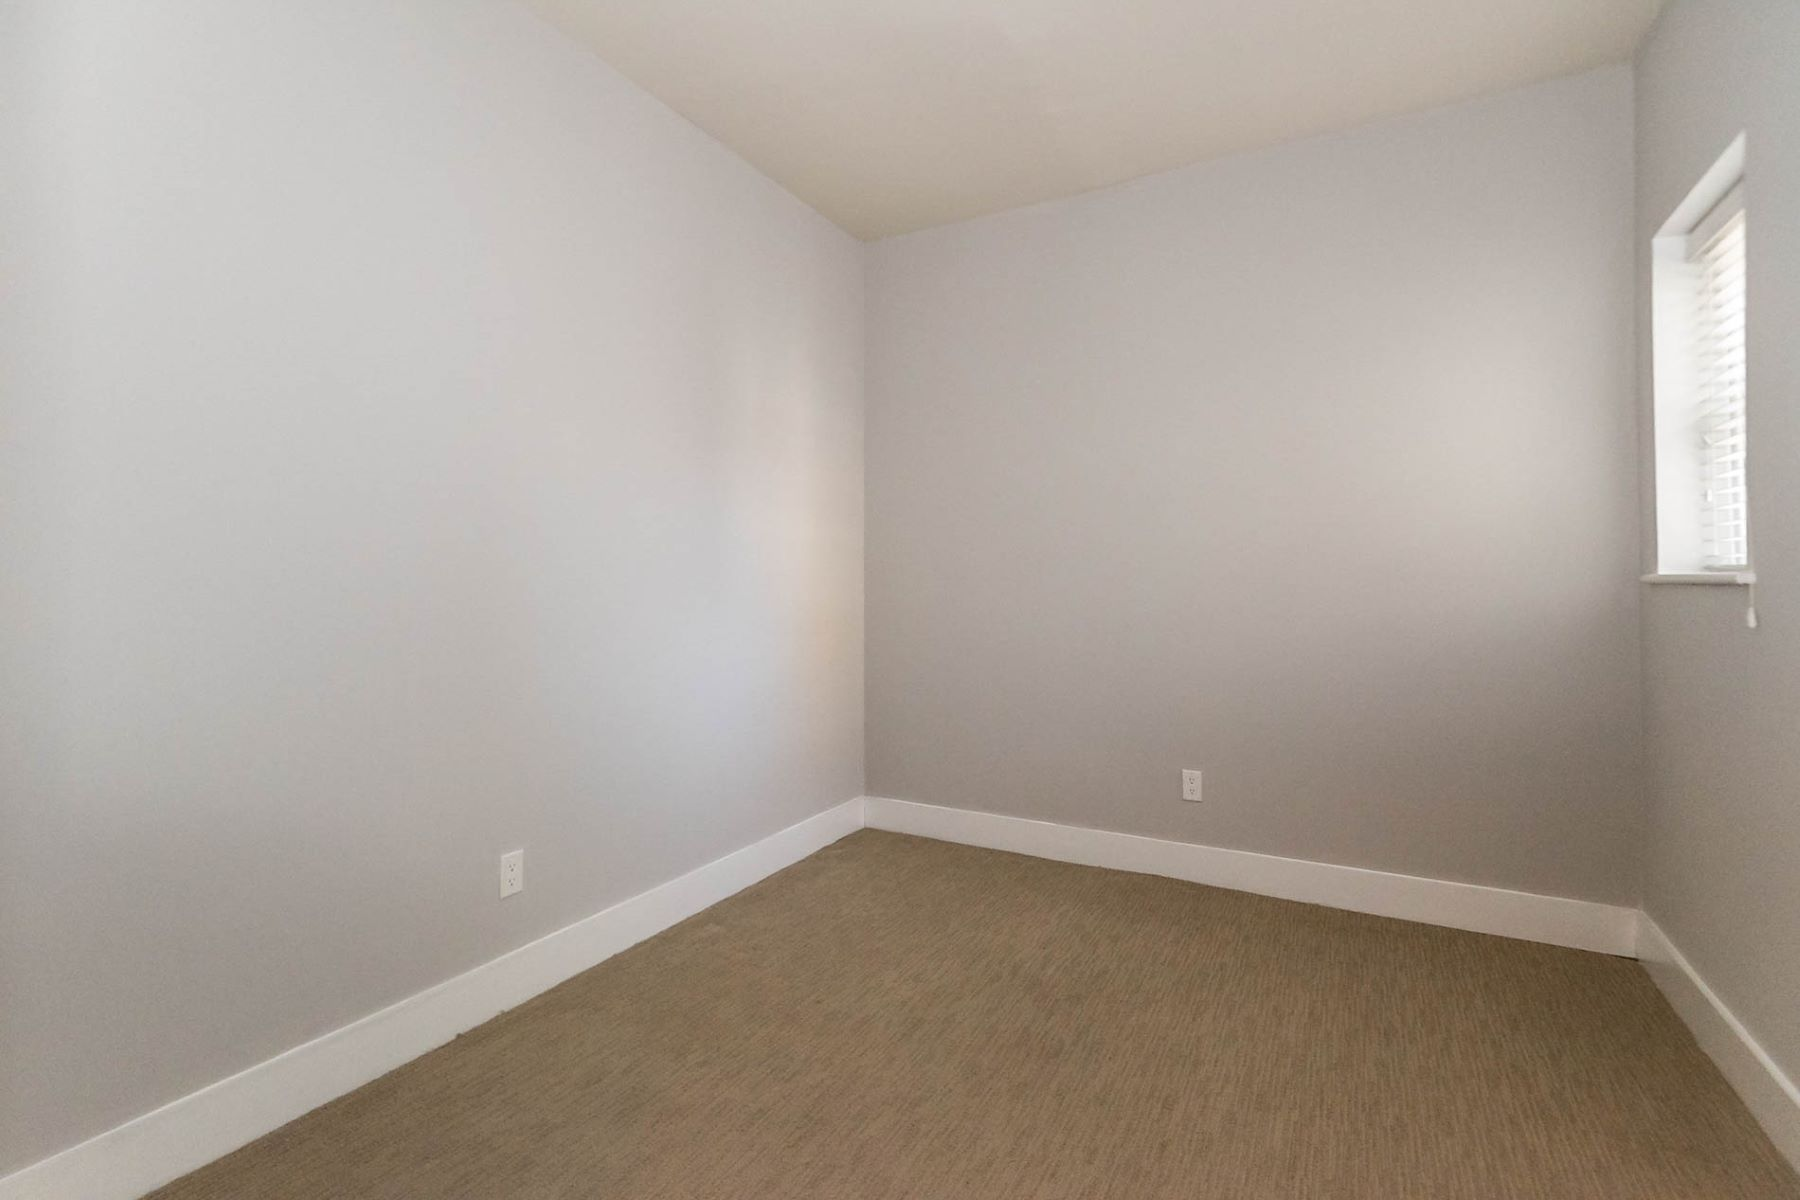 Additional photo for property listing at Westgate Ave 601 Westgate Ave # 601A University City, Missouri 63130 United States